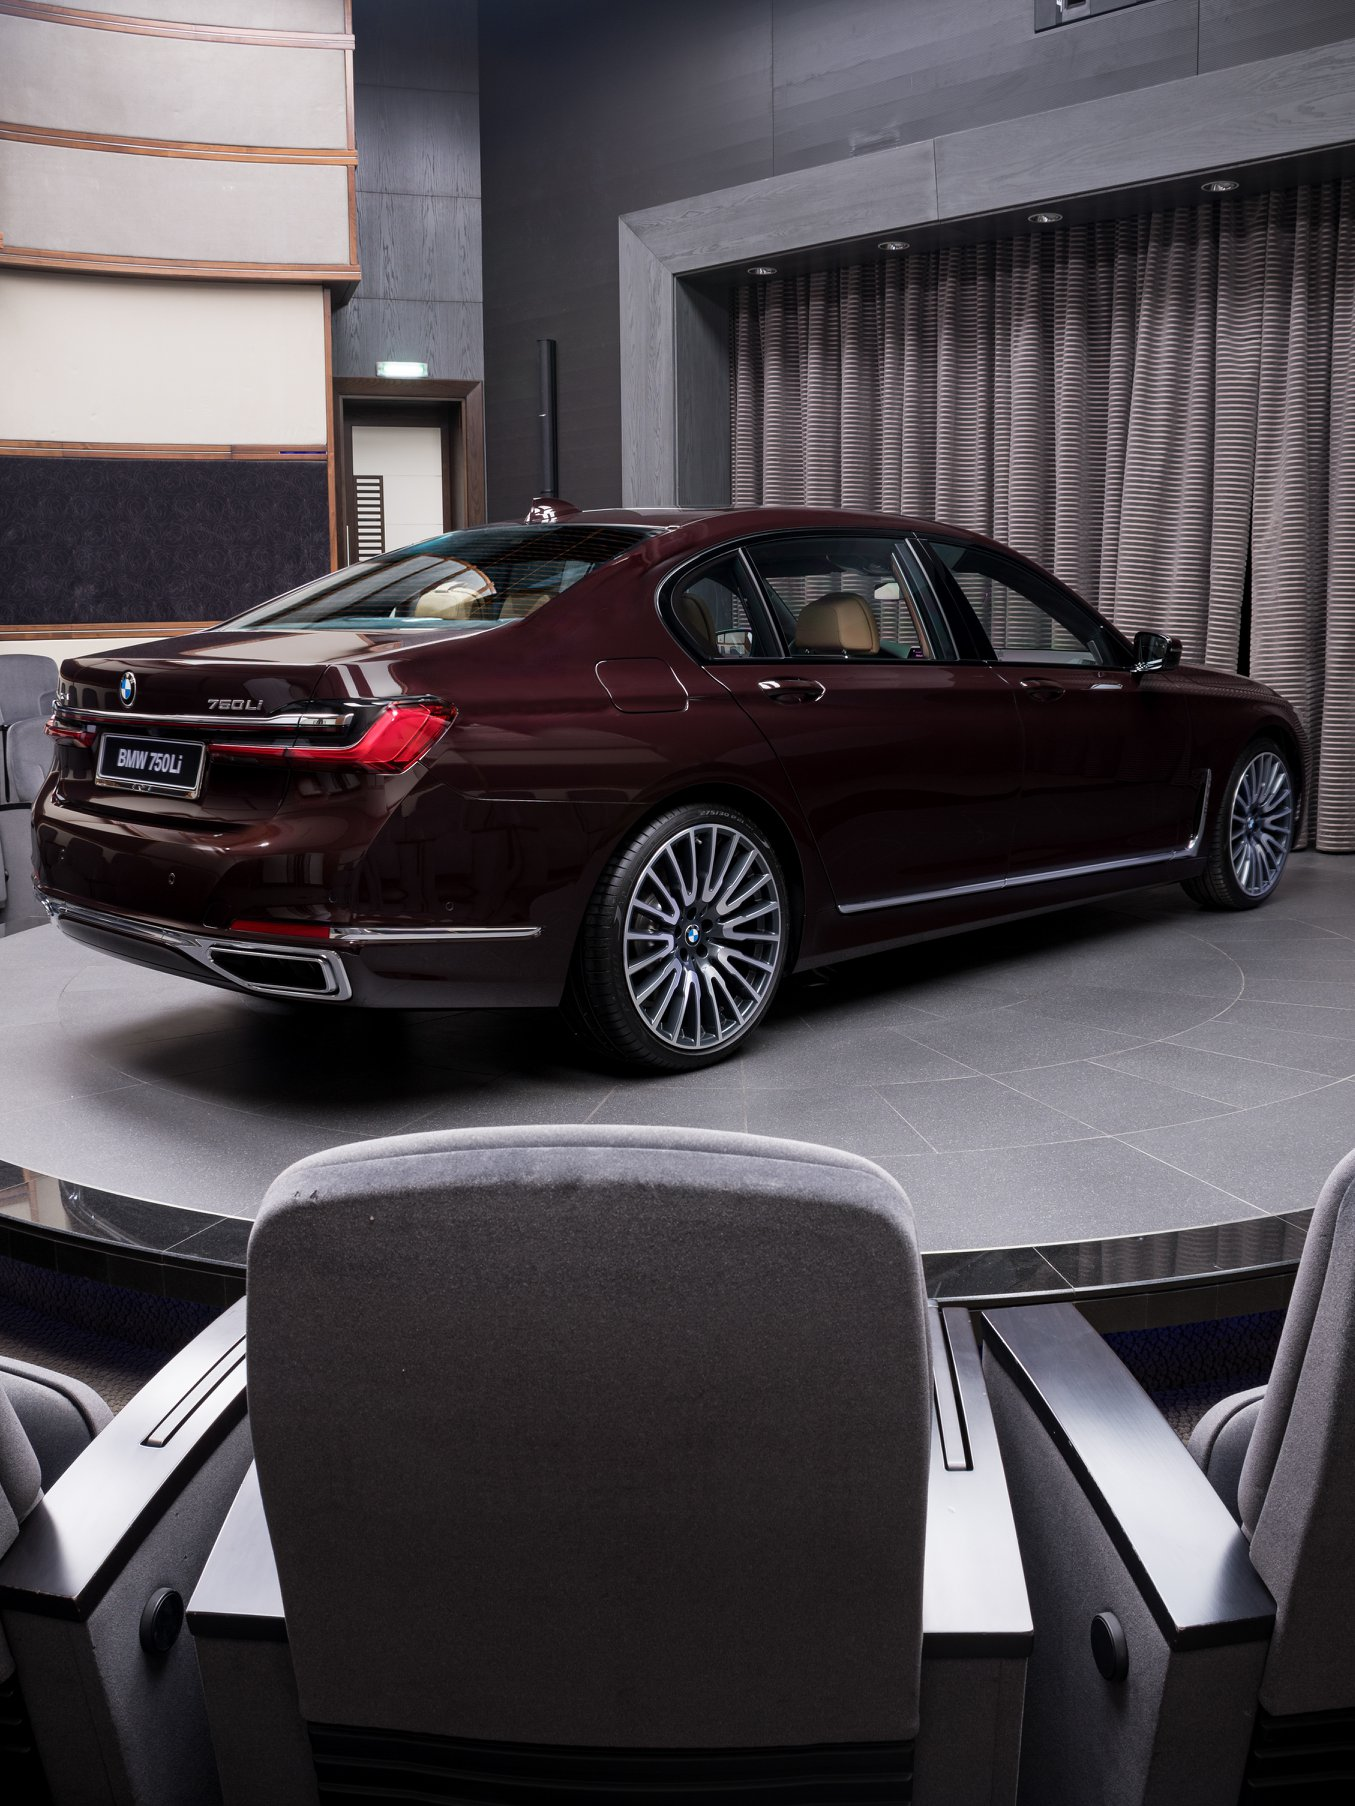 2020_BMW_750Li_Royal_Burgundy_Red_0005